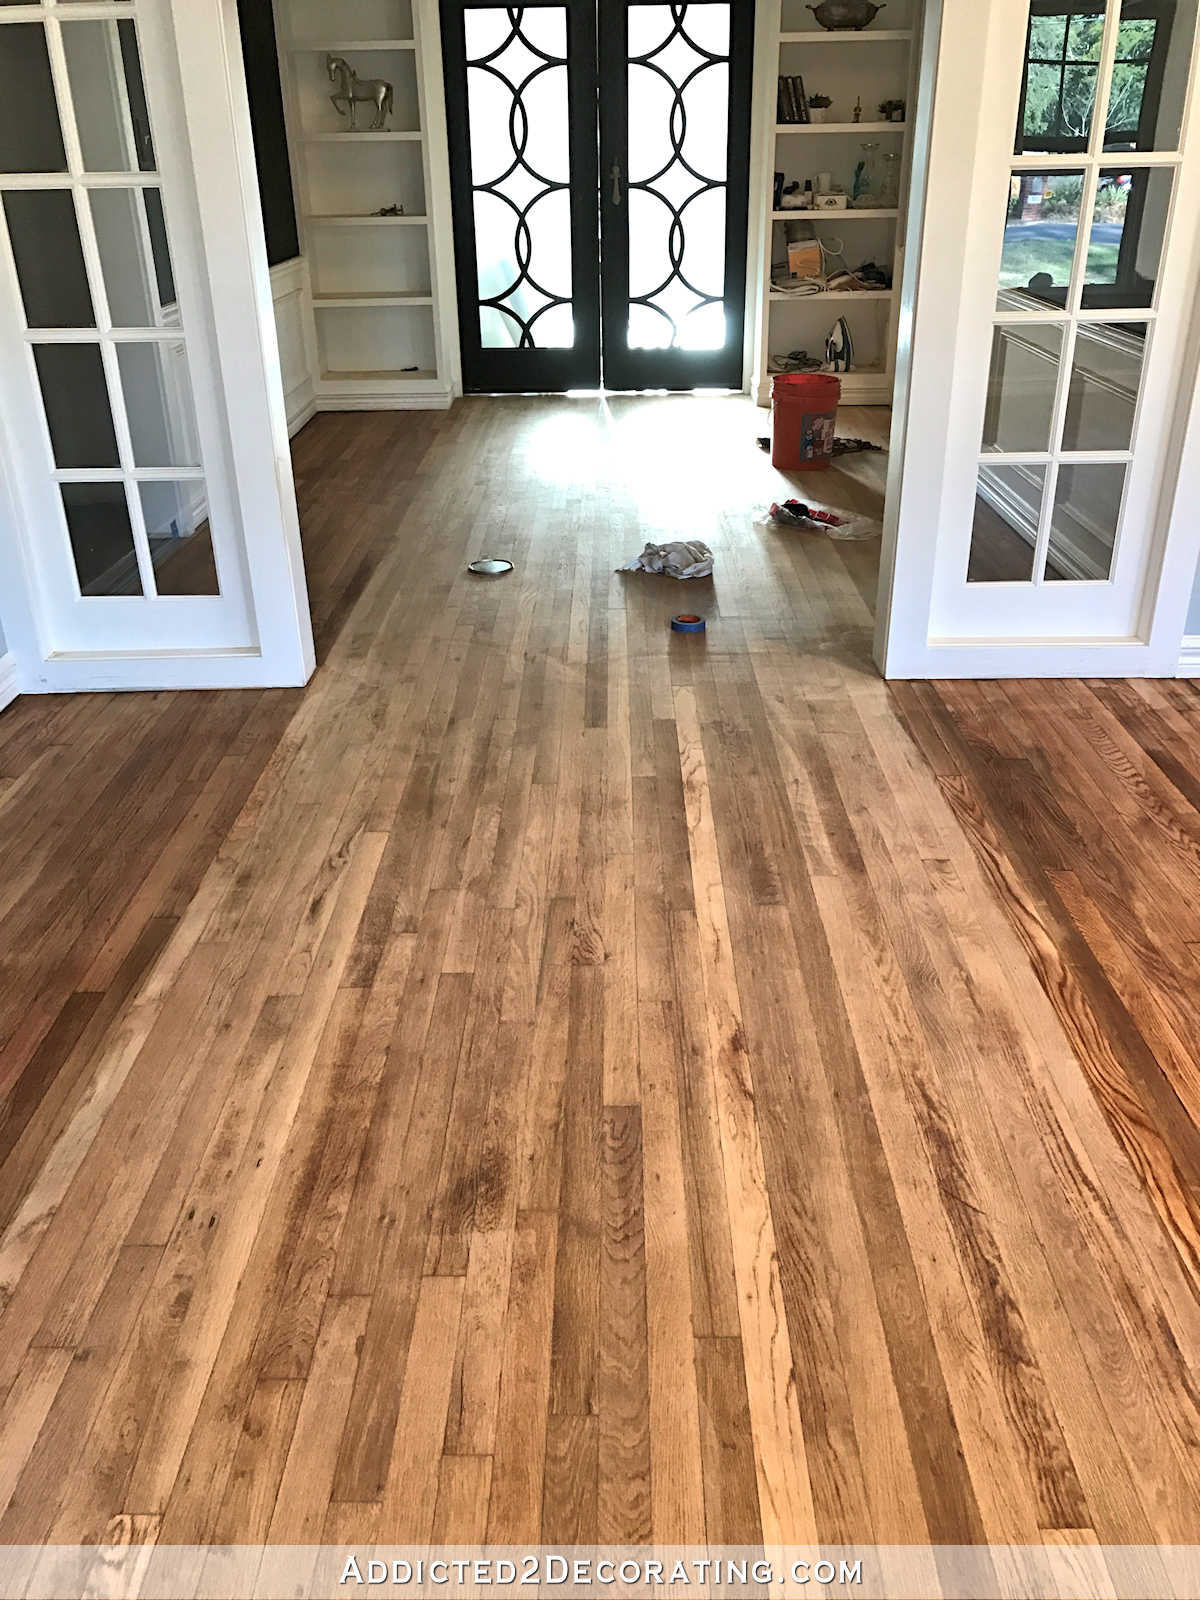 preparing hardwood floors for sanding of adventures in staining my red oak hardwood floors products process with regard to staining red oak hardwood floors 5 music room wood conditioner